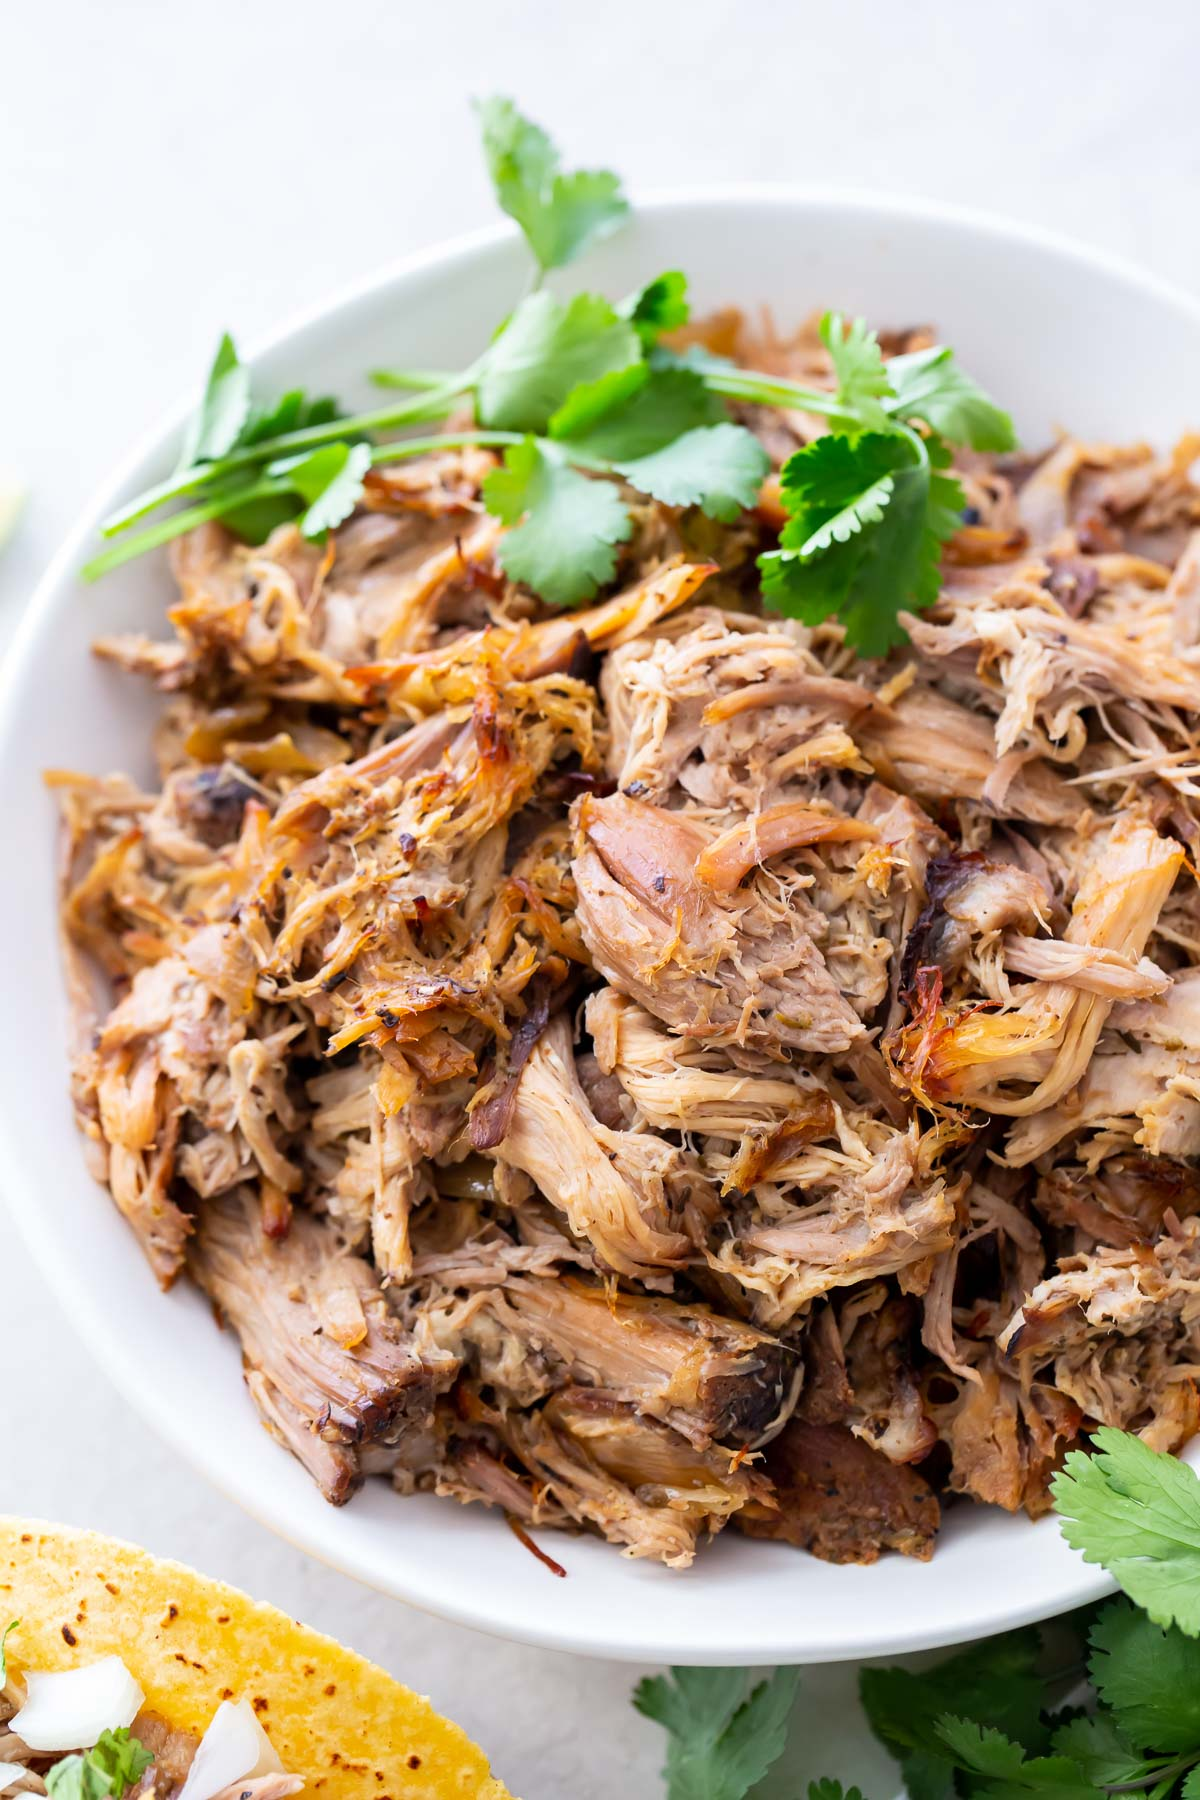 shredded Mexican pulled pork in a bowl, garnished with cilantro